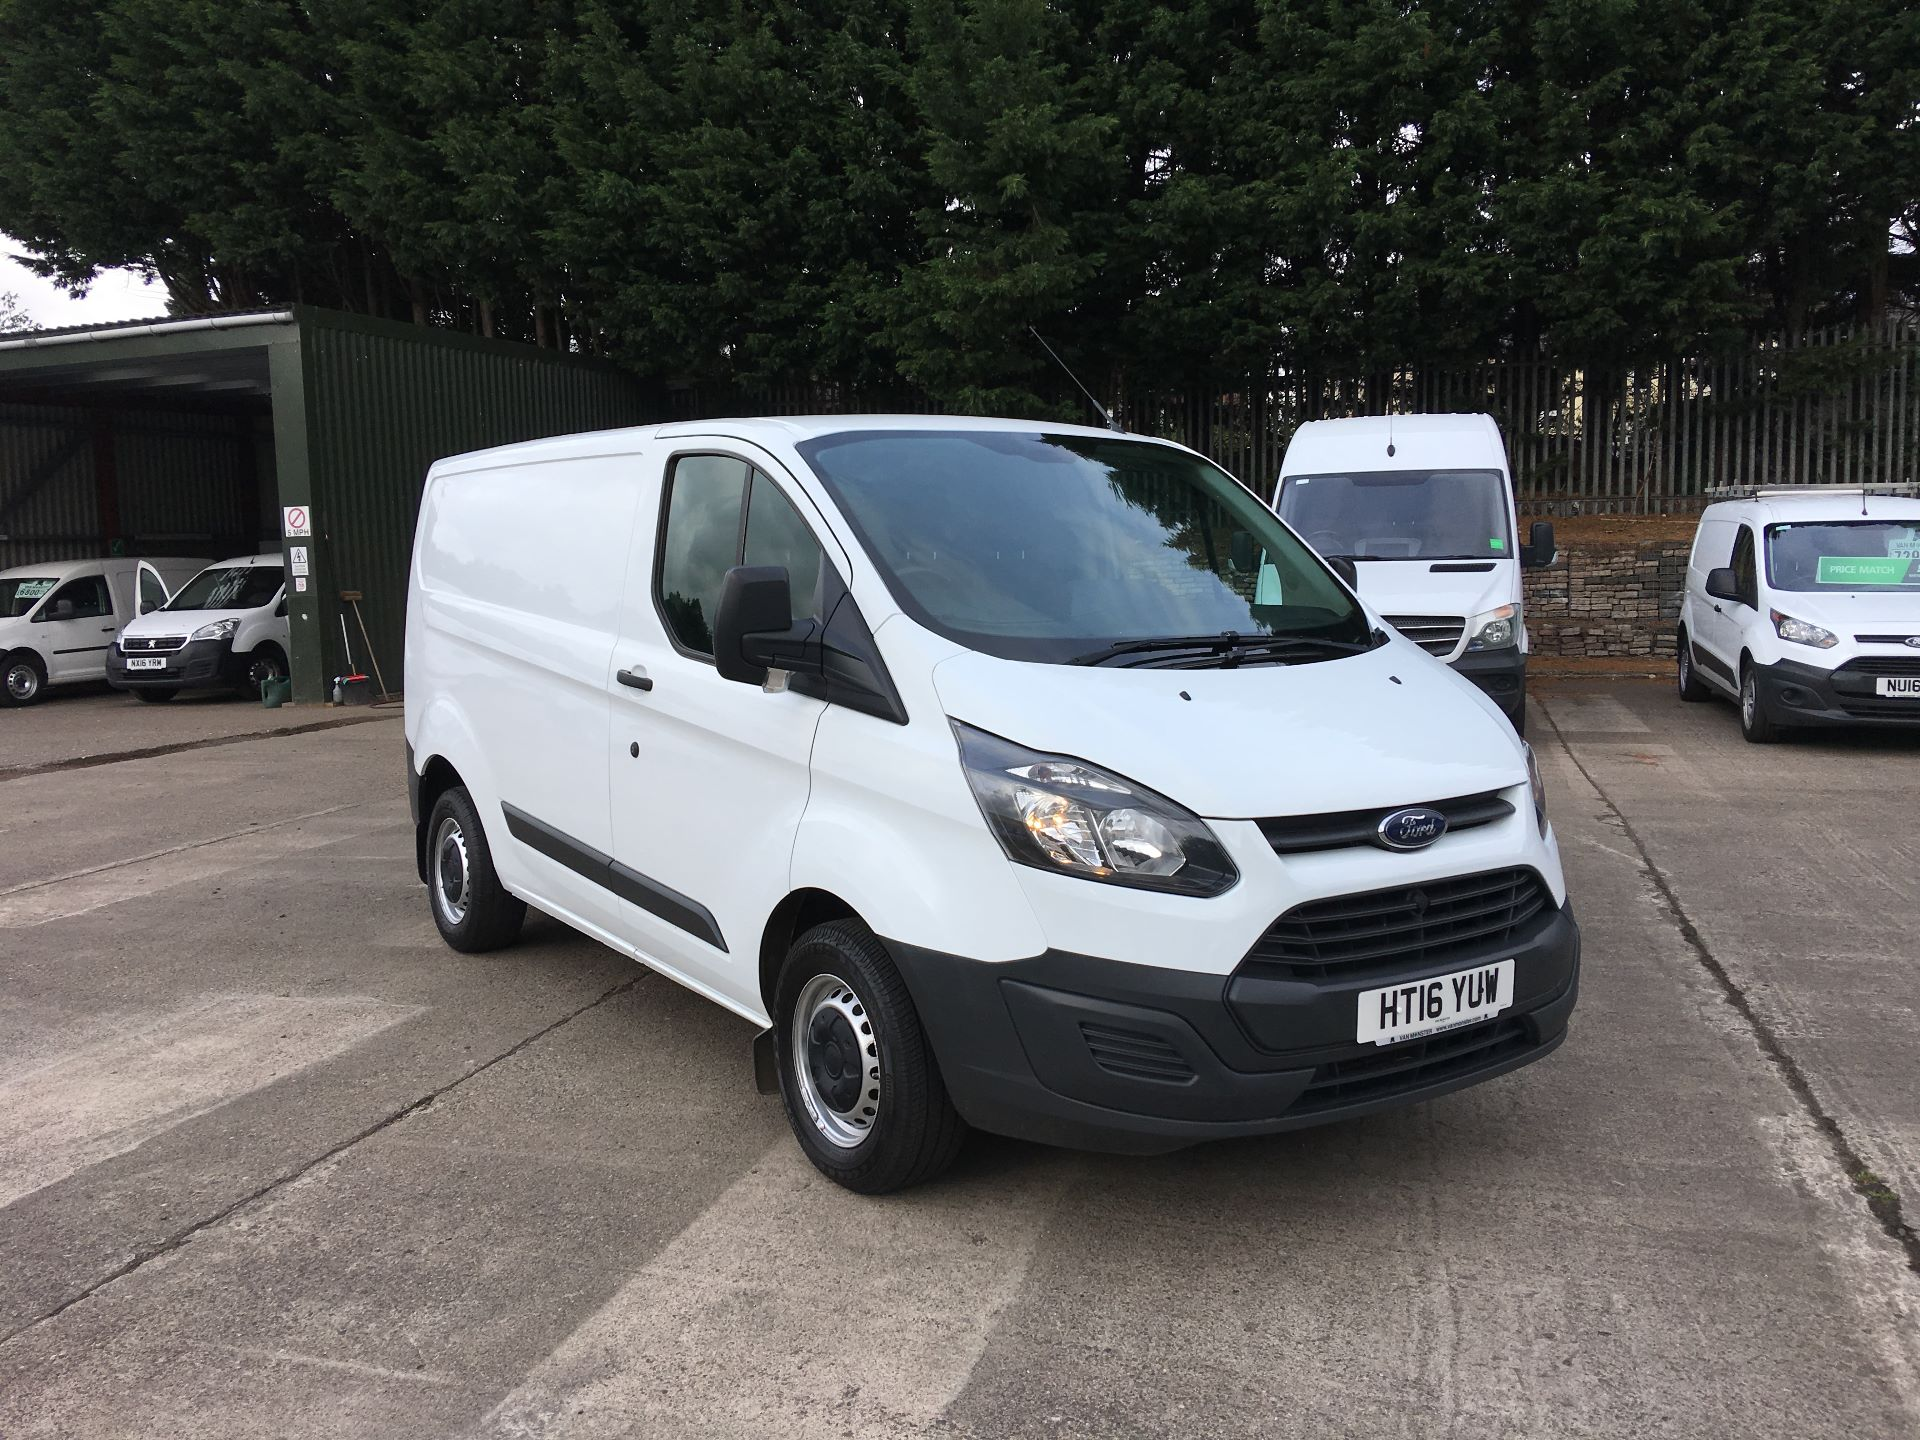 2016 Ford Transit Custom 290 L1 DIESEL FWD 2.2 TDCI 100PS LOW ROOF VAN EURO 5 (HT16YUW)